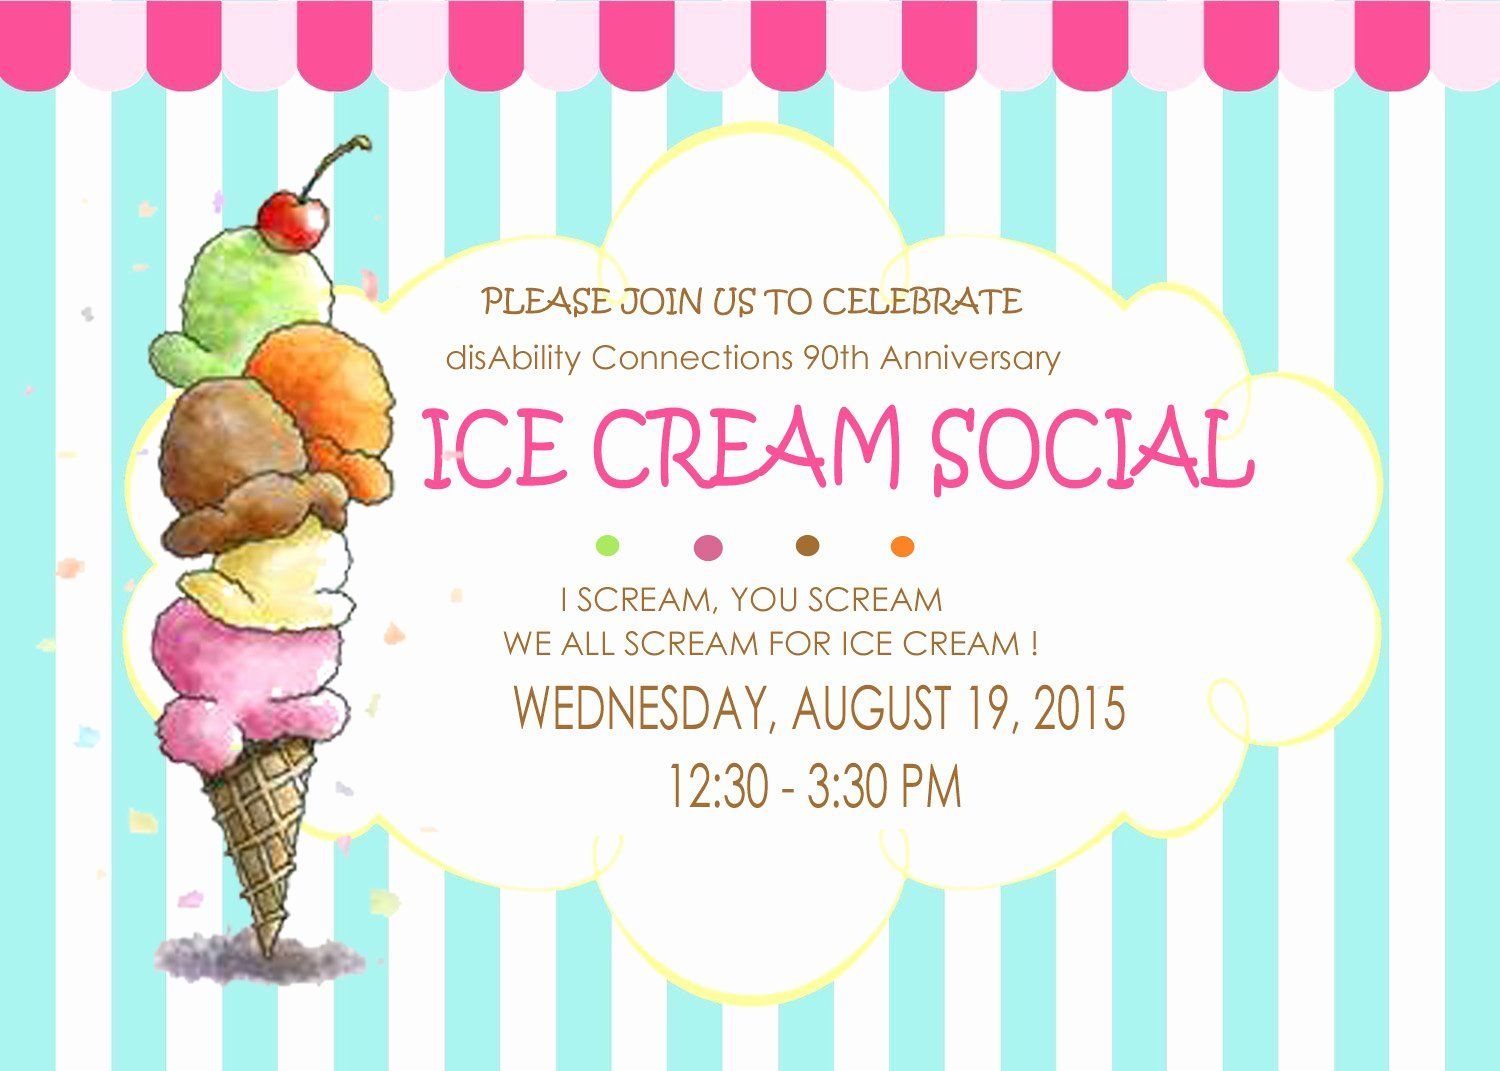 Ice Cream Social Flyer Awesome Disability Connections Inc Ice Cream Social 90th Anniv Ice Cream Social Invitations Ice Cream Social Ice Cream Party Invitations